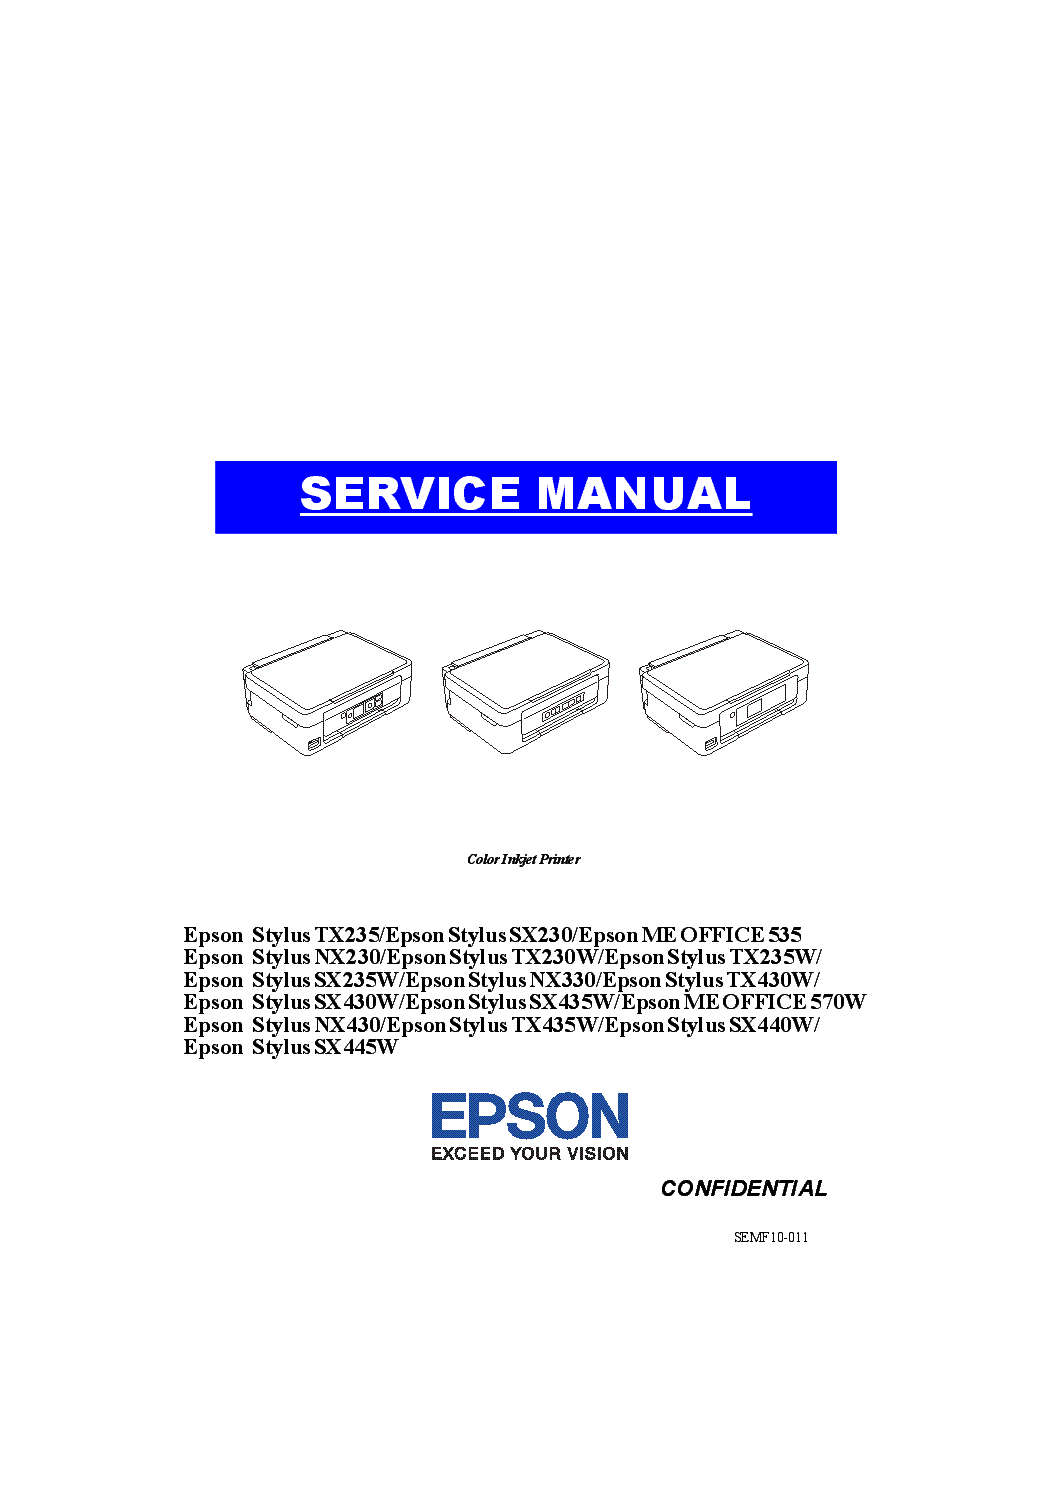 Epson nx430 owners manual.